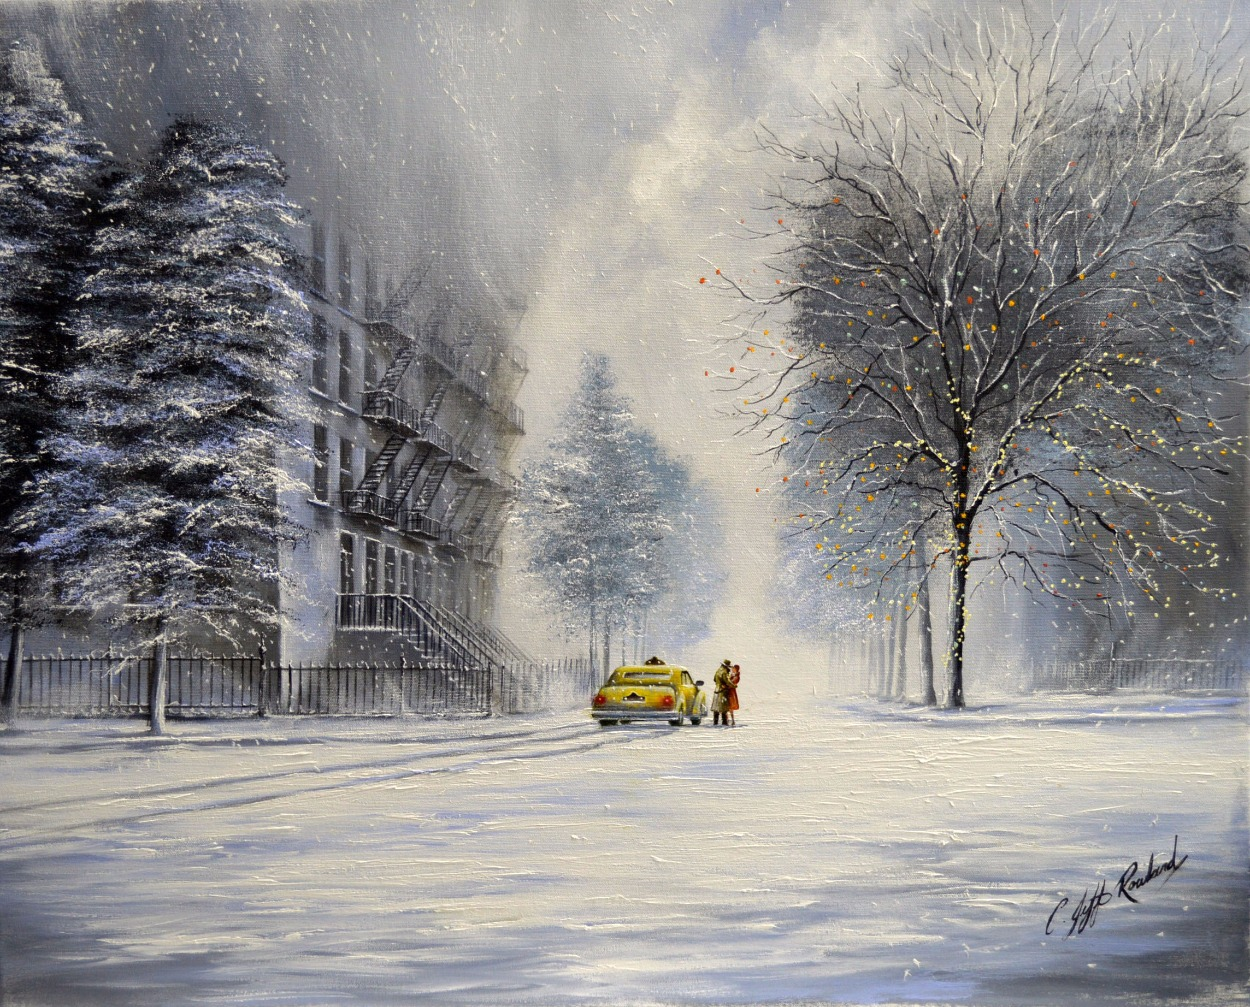 On That Cold Christmas Eve by Jeff Rowland, Love | Romance | Couple | New York | Nostalgic | Water